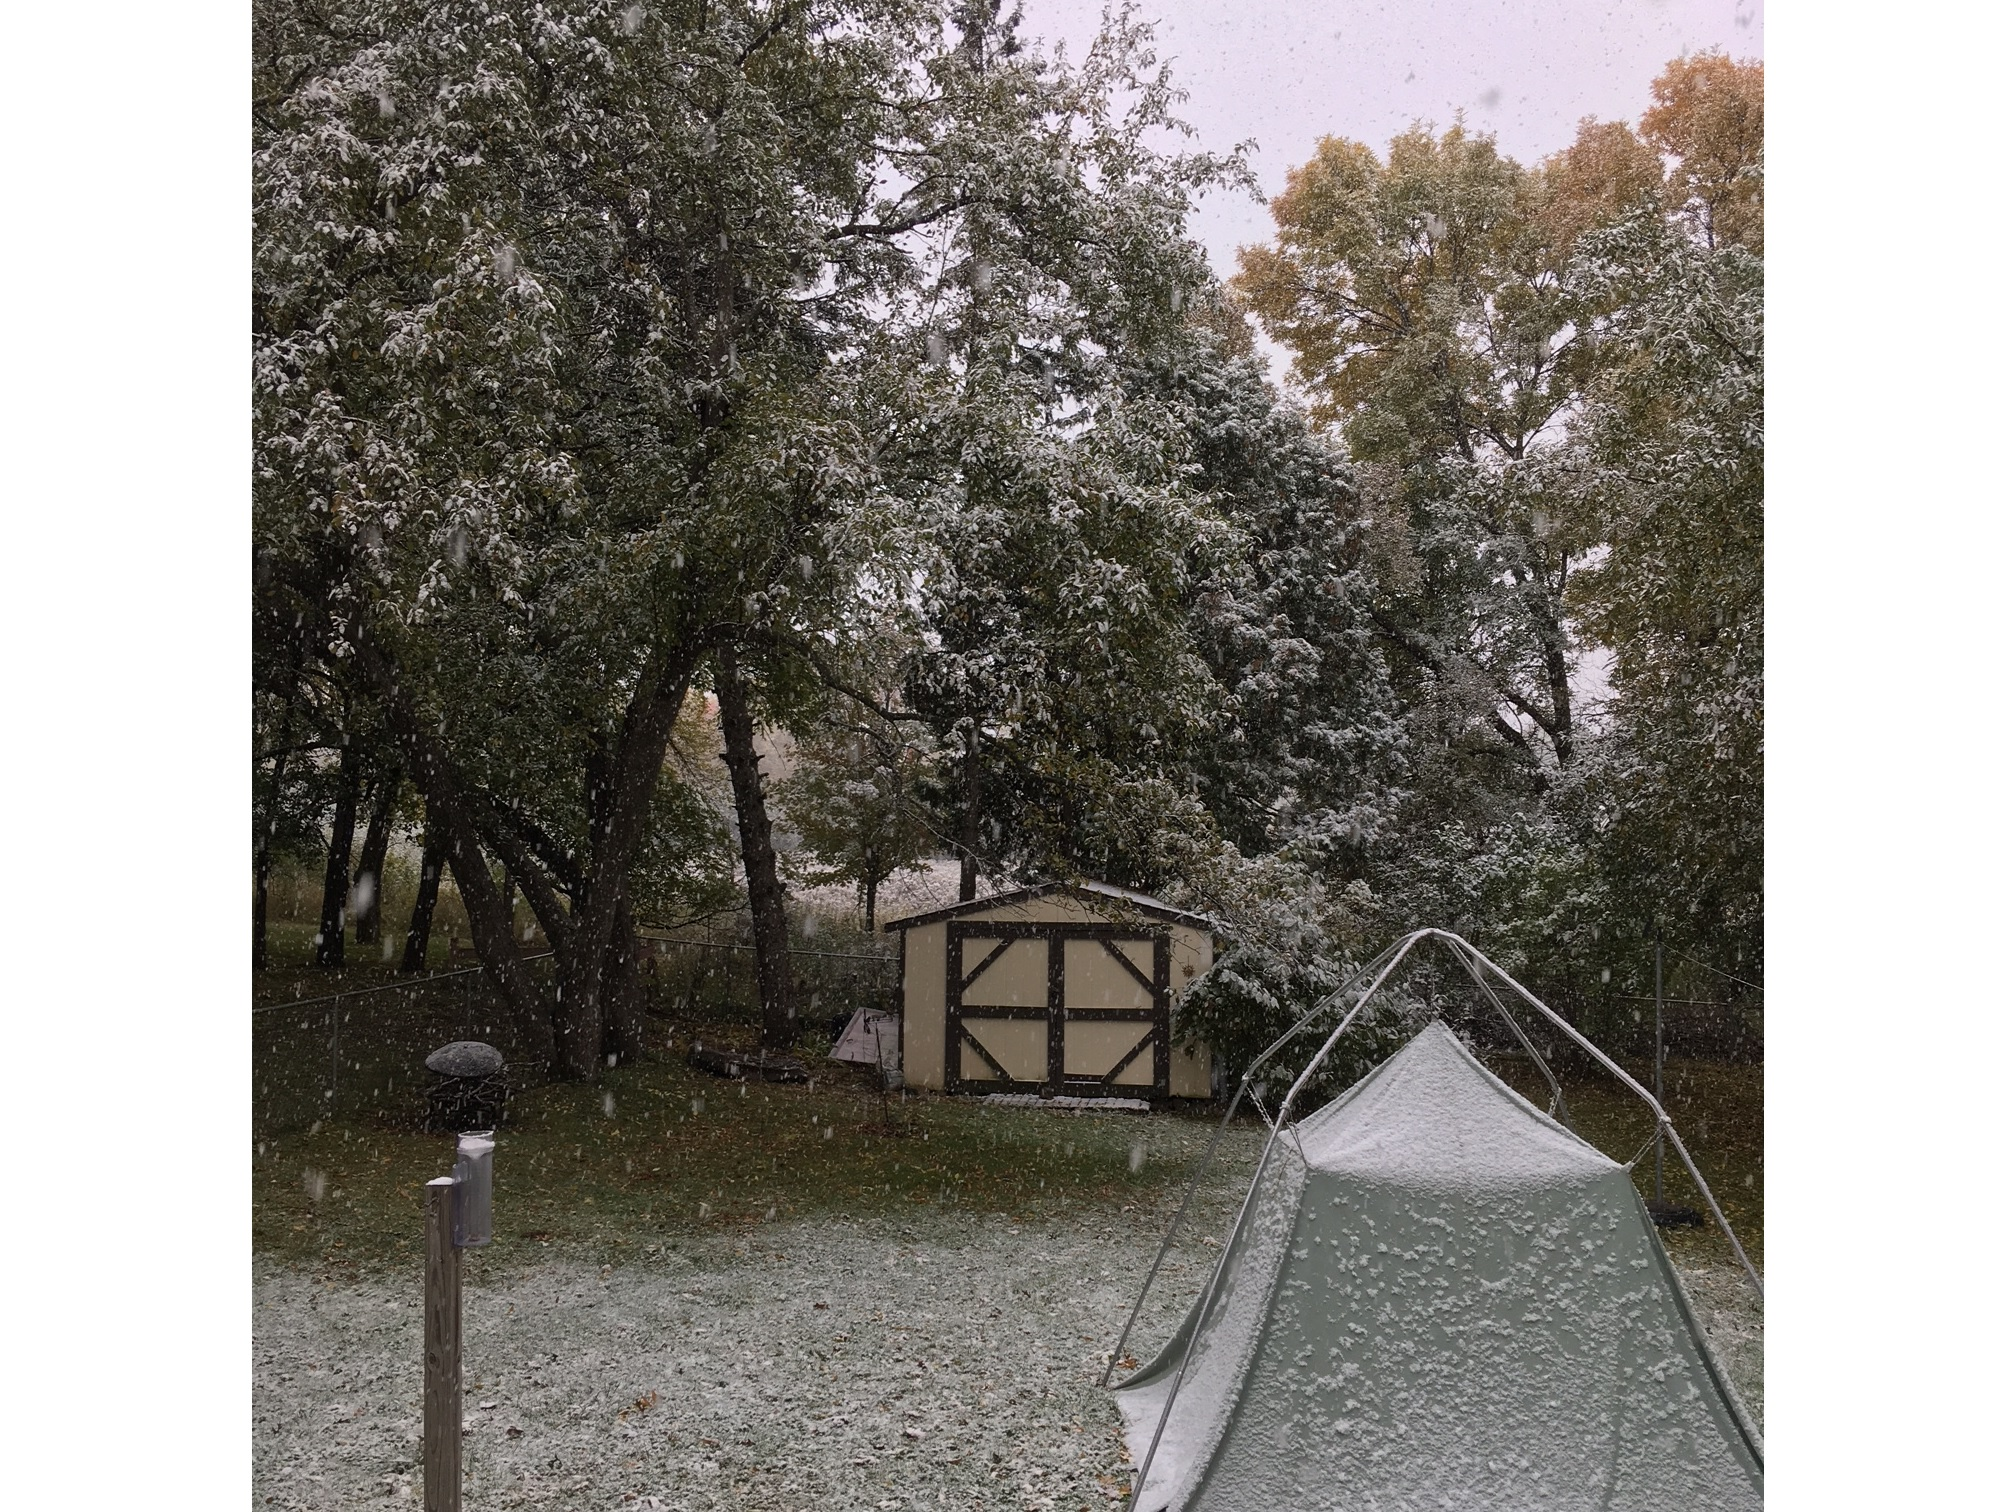 Snow on October 14, 2018 in Maplewood